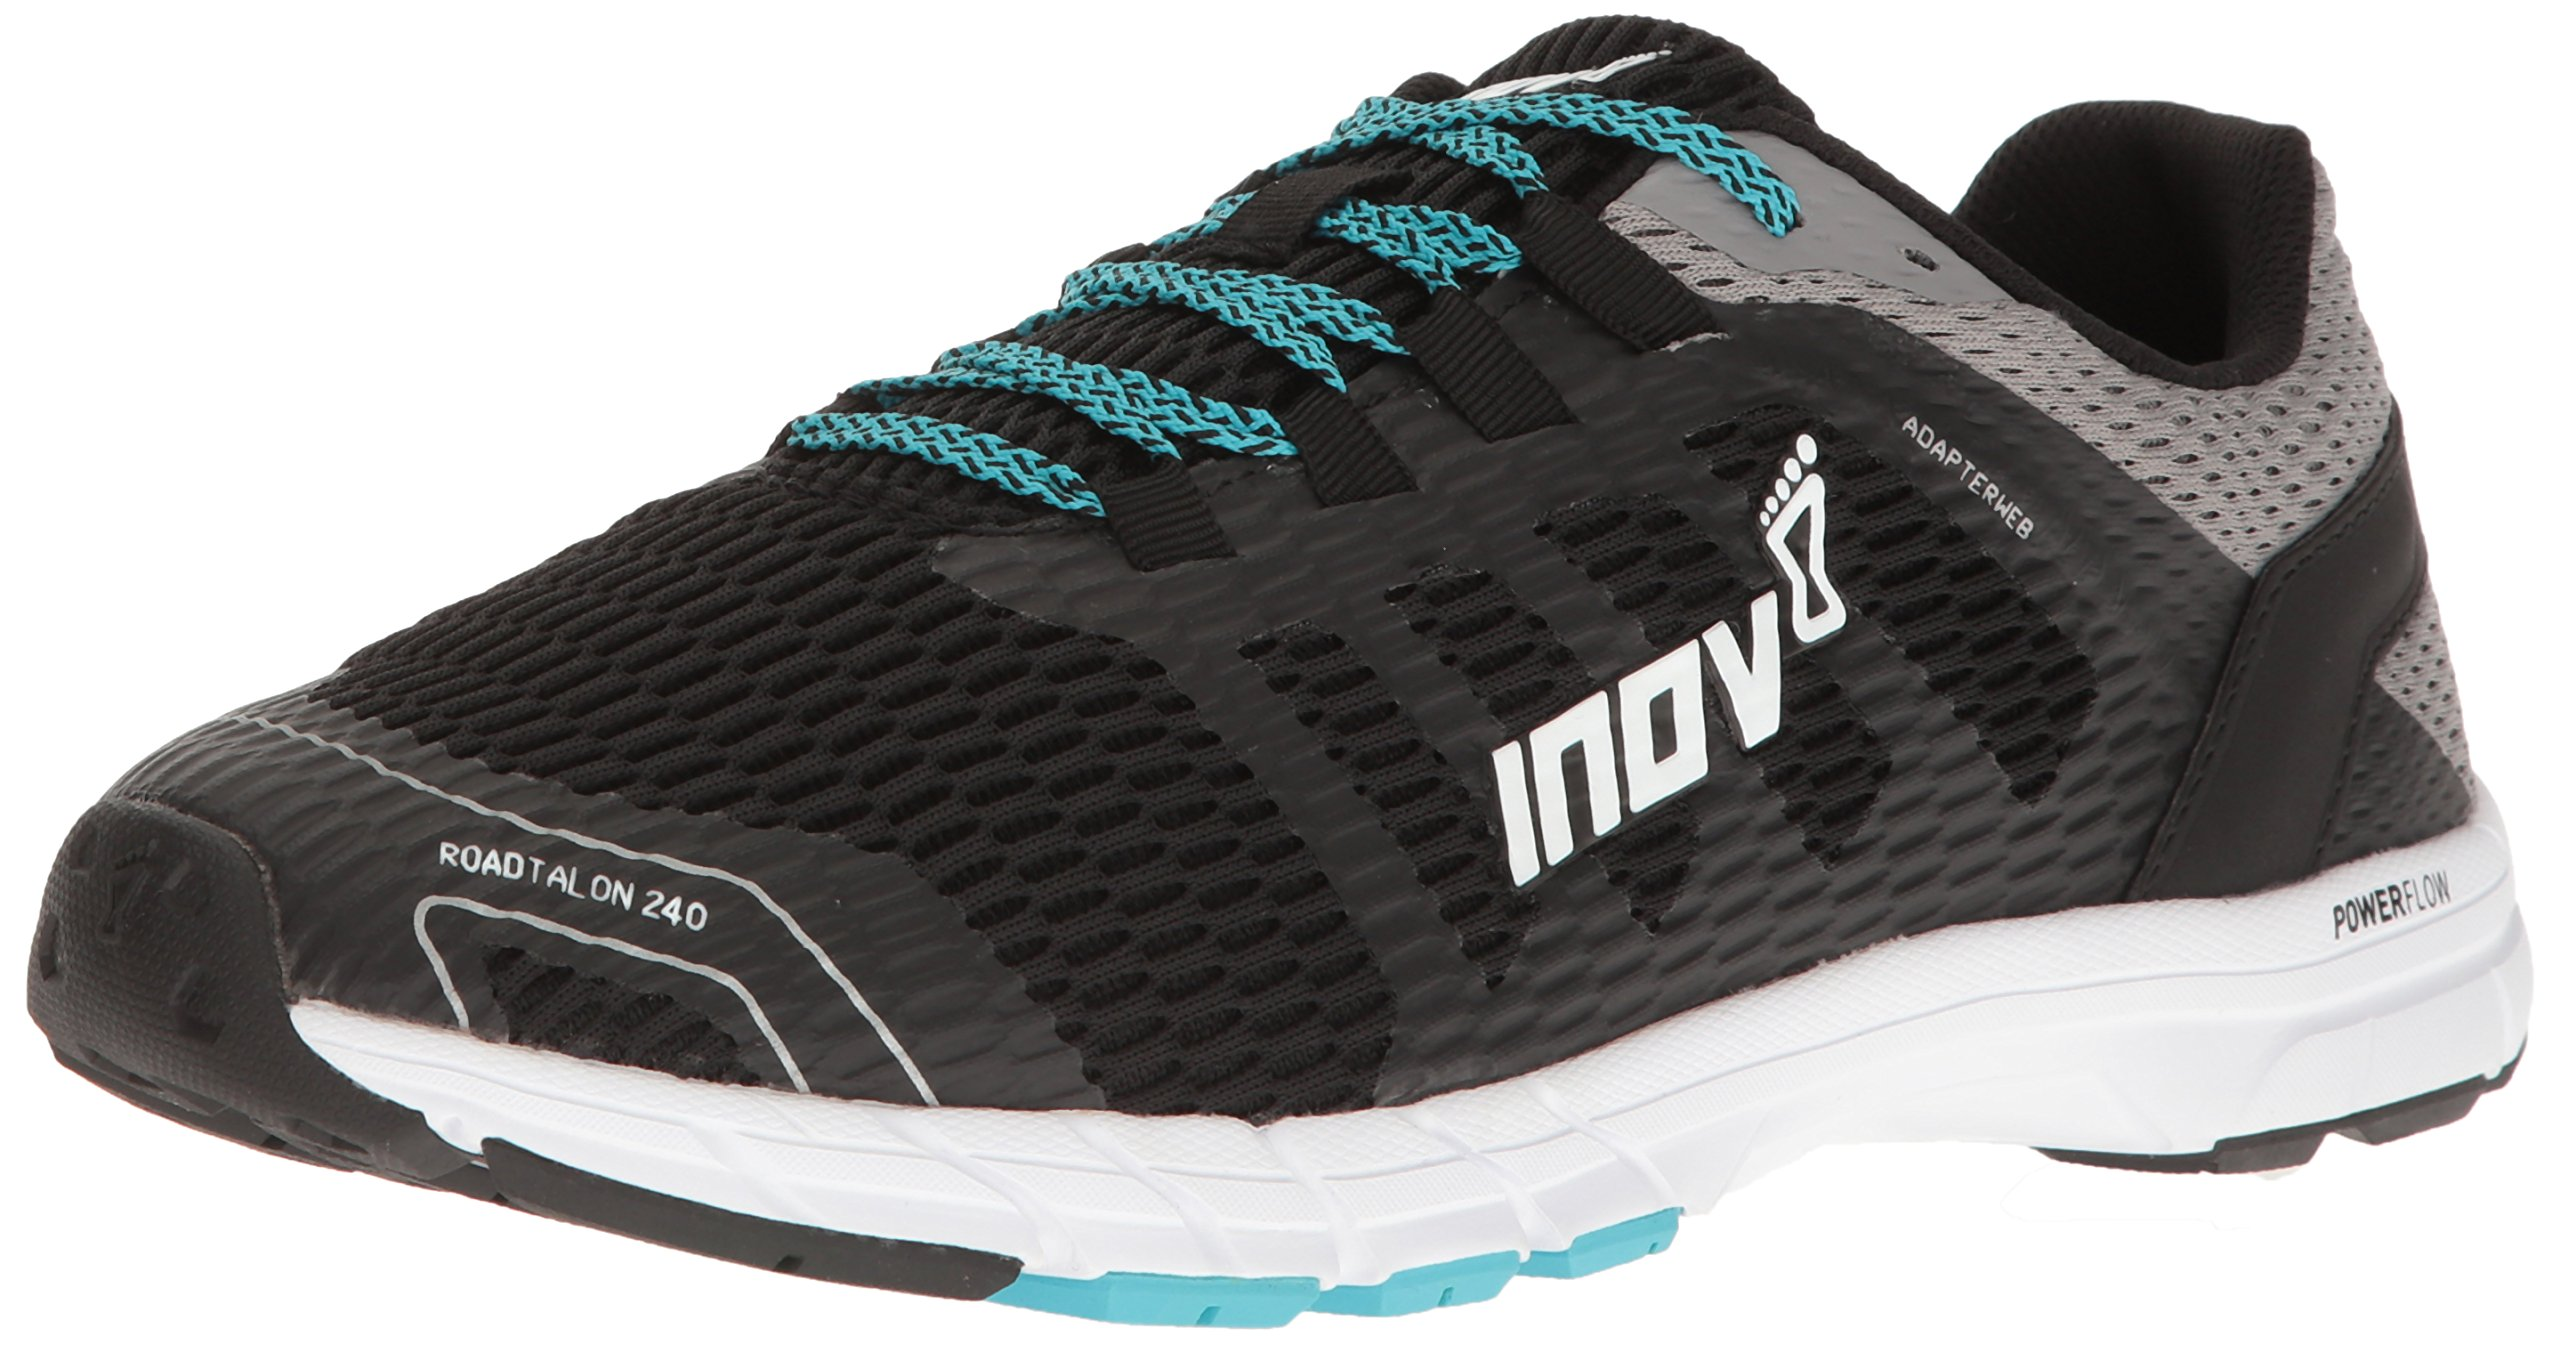 inov-8 Men's Roadtalon 240 Running-Shoes, Black/Grey/Blue, 11 C/D US